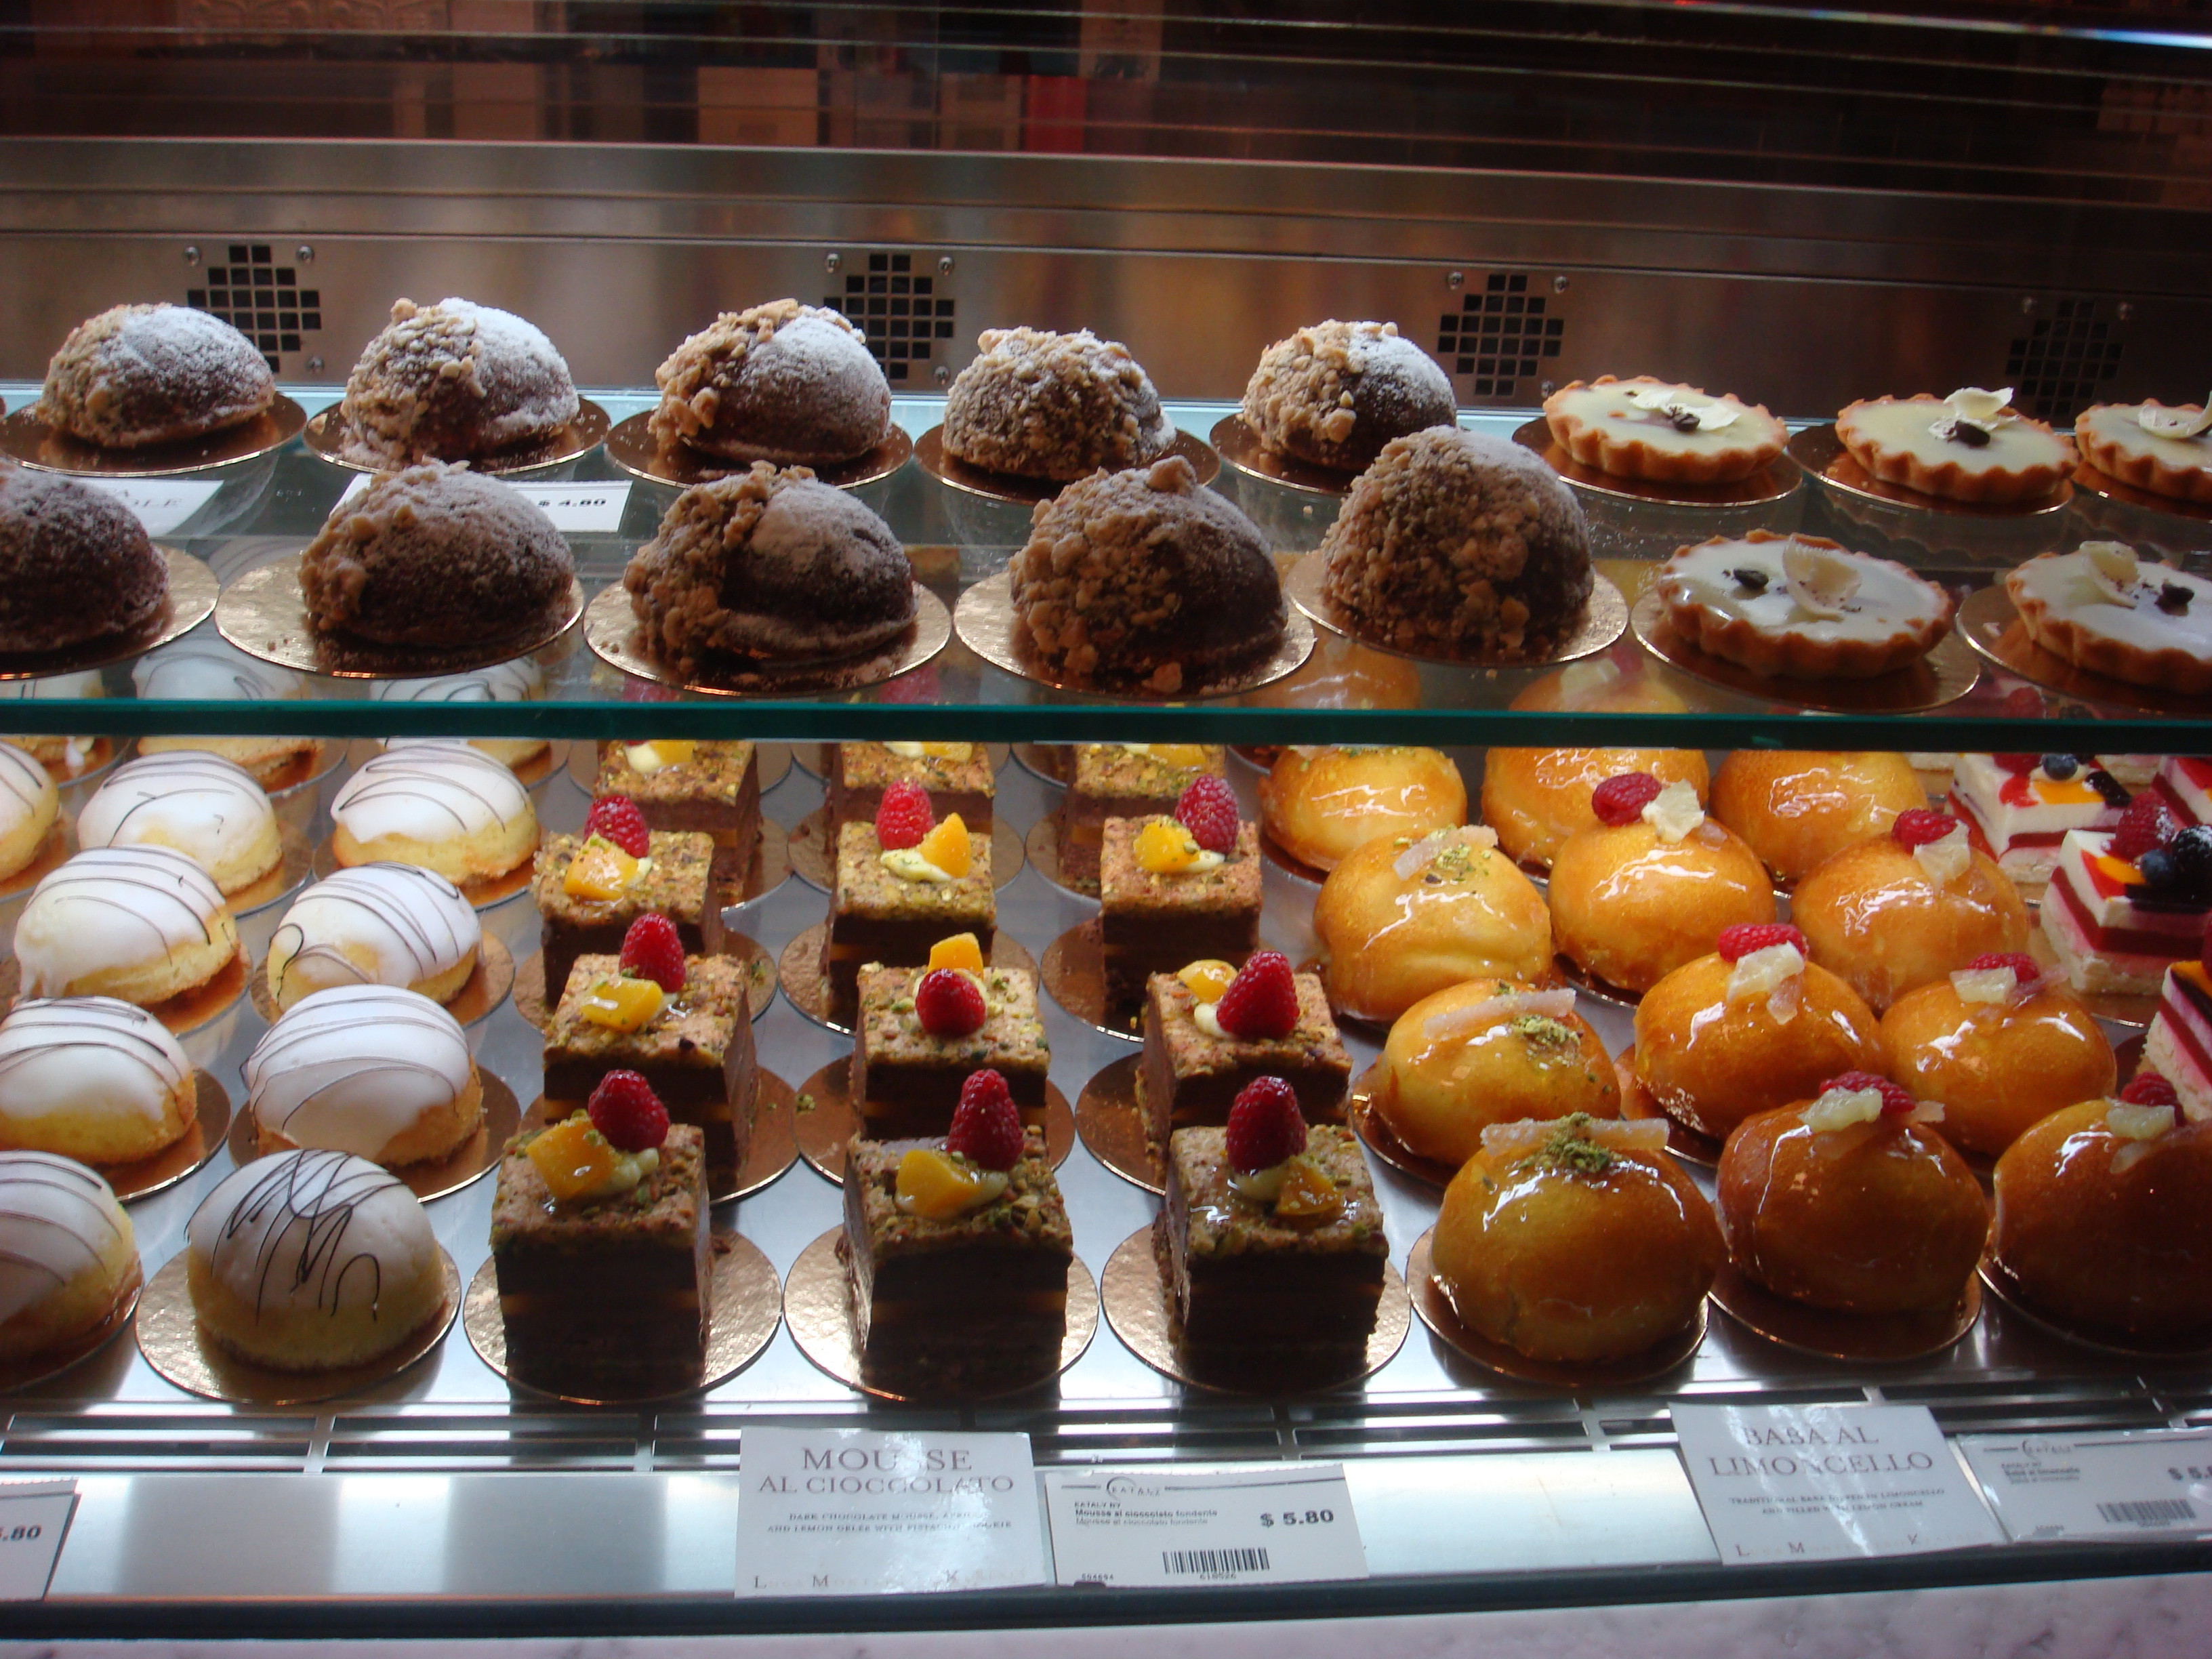 Healthy Desserts Nyc  Eataly NYC